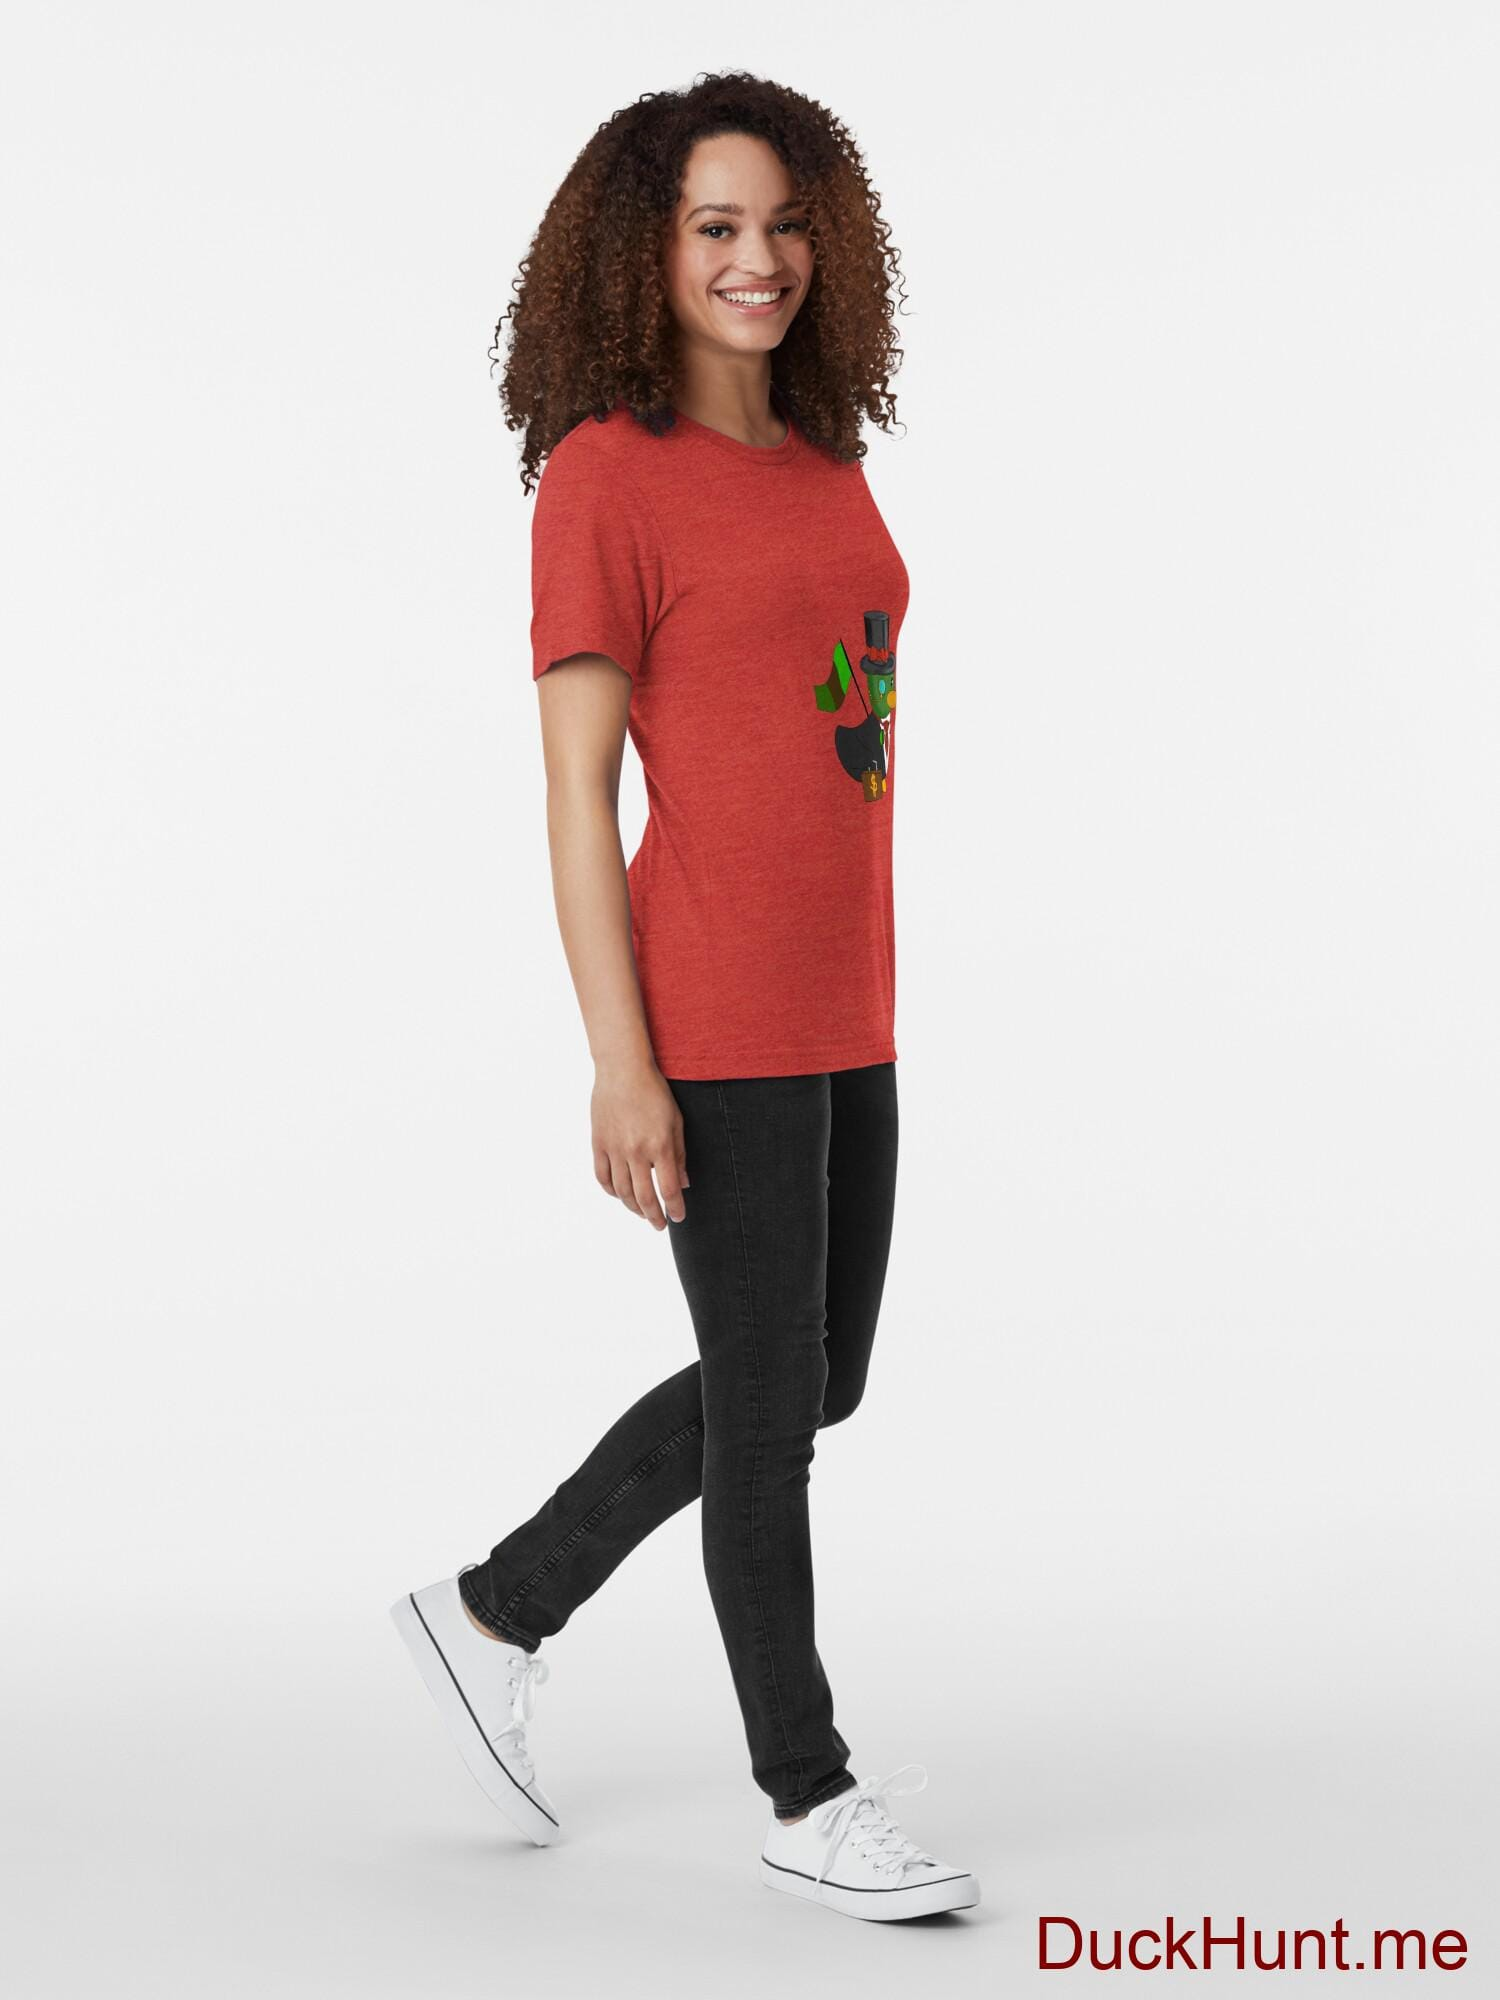 Golden Duck Red Tri-blend T-Shirt (Front printed) alternative image 3